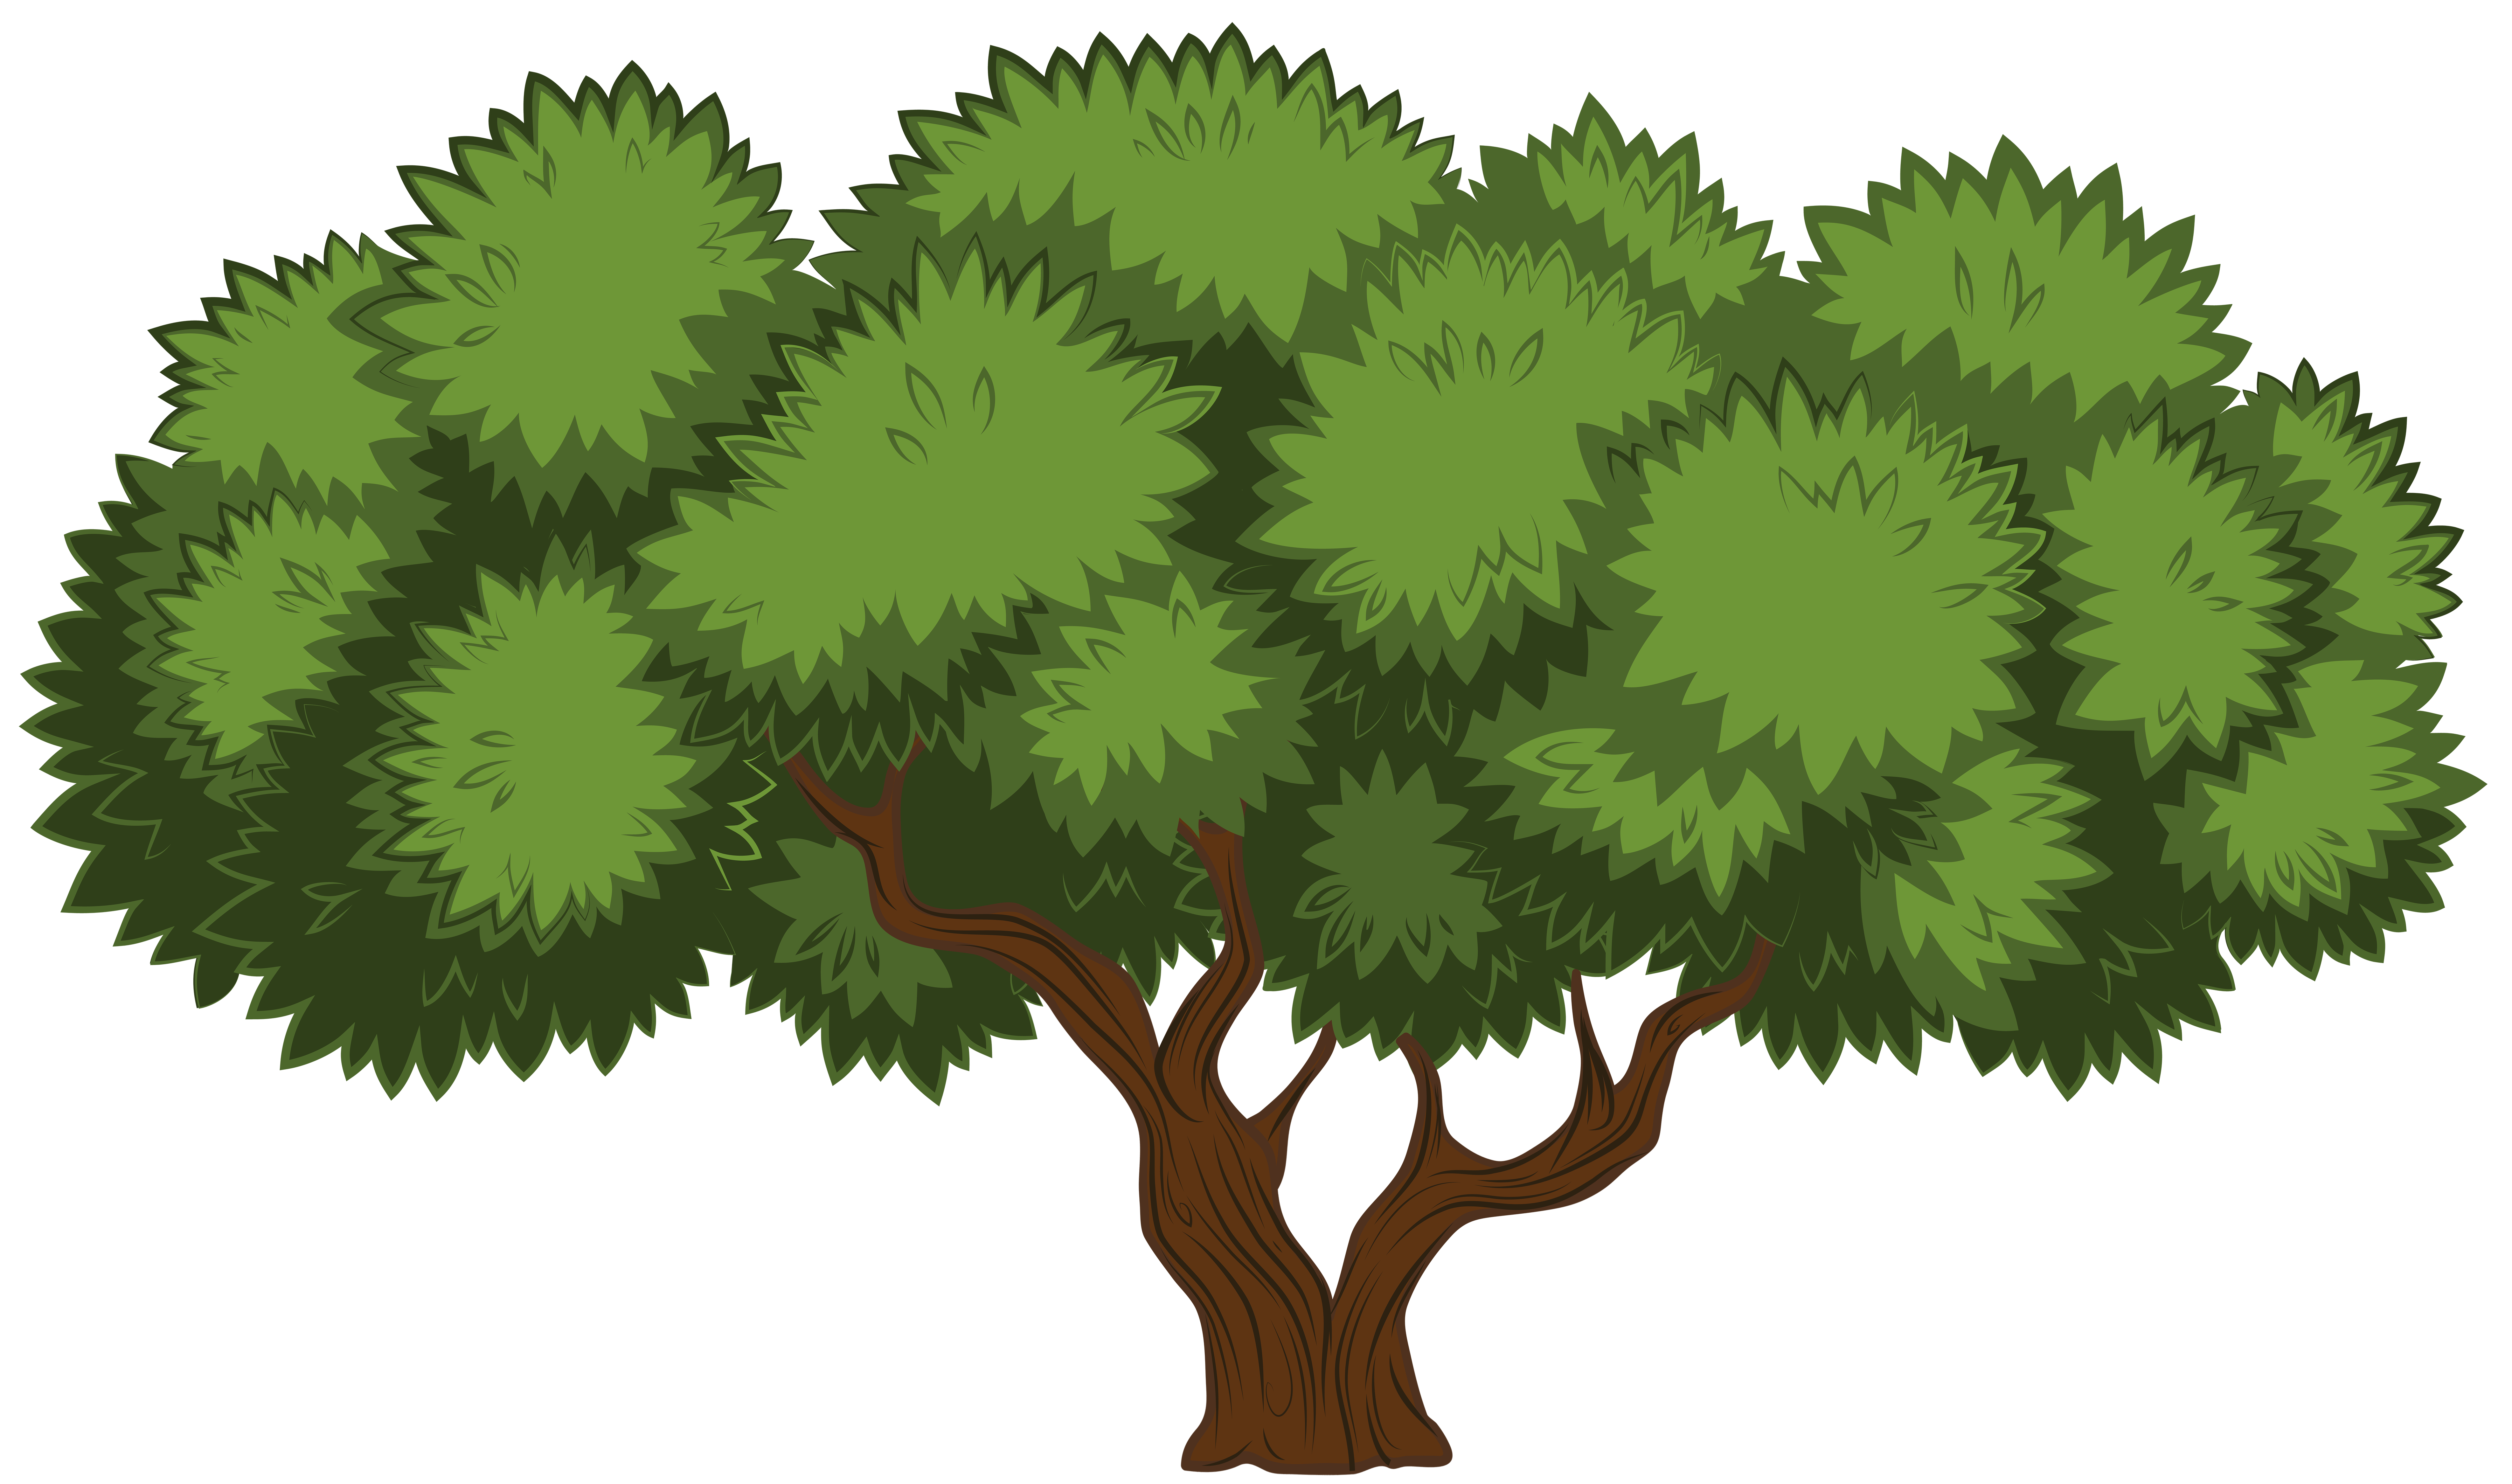 Tree clip art png. Image gallery yopriceville high